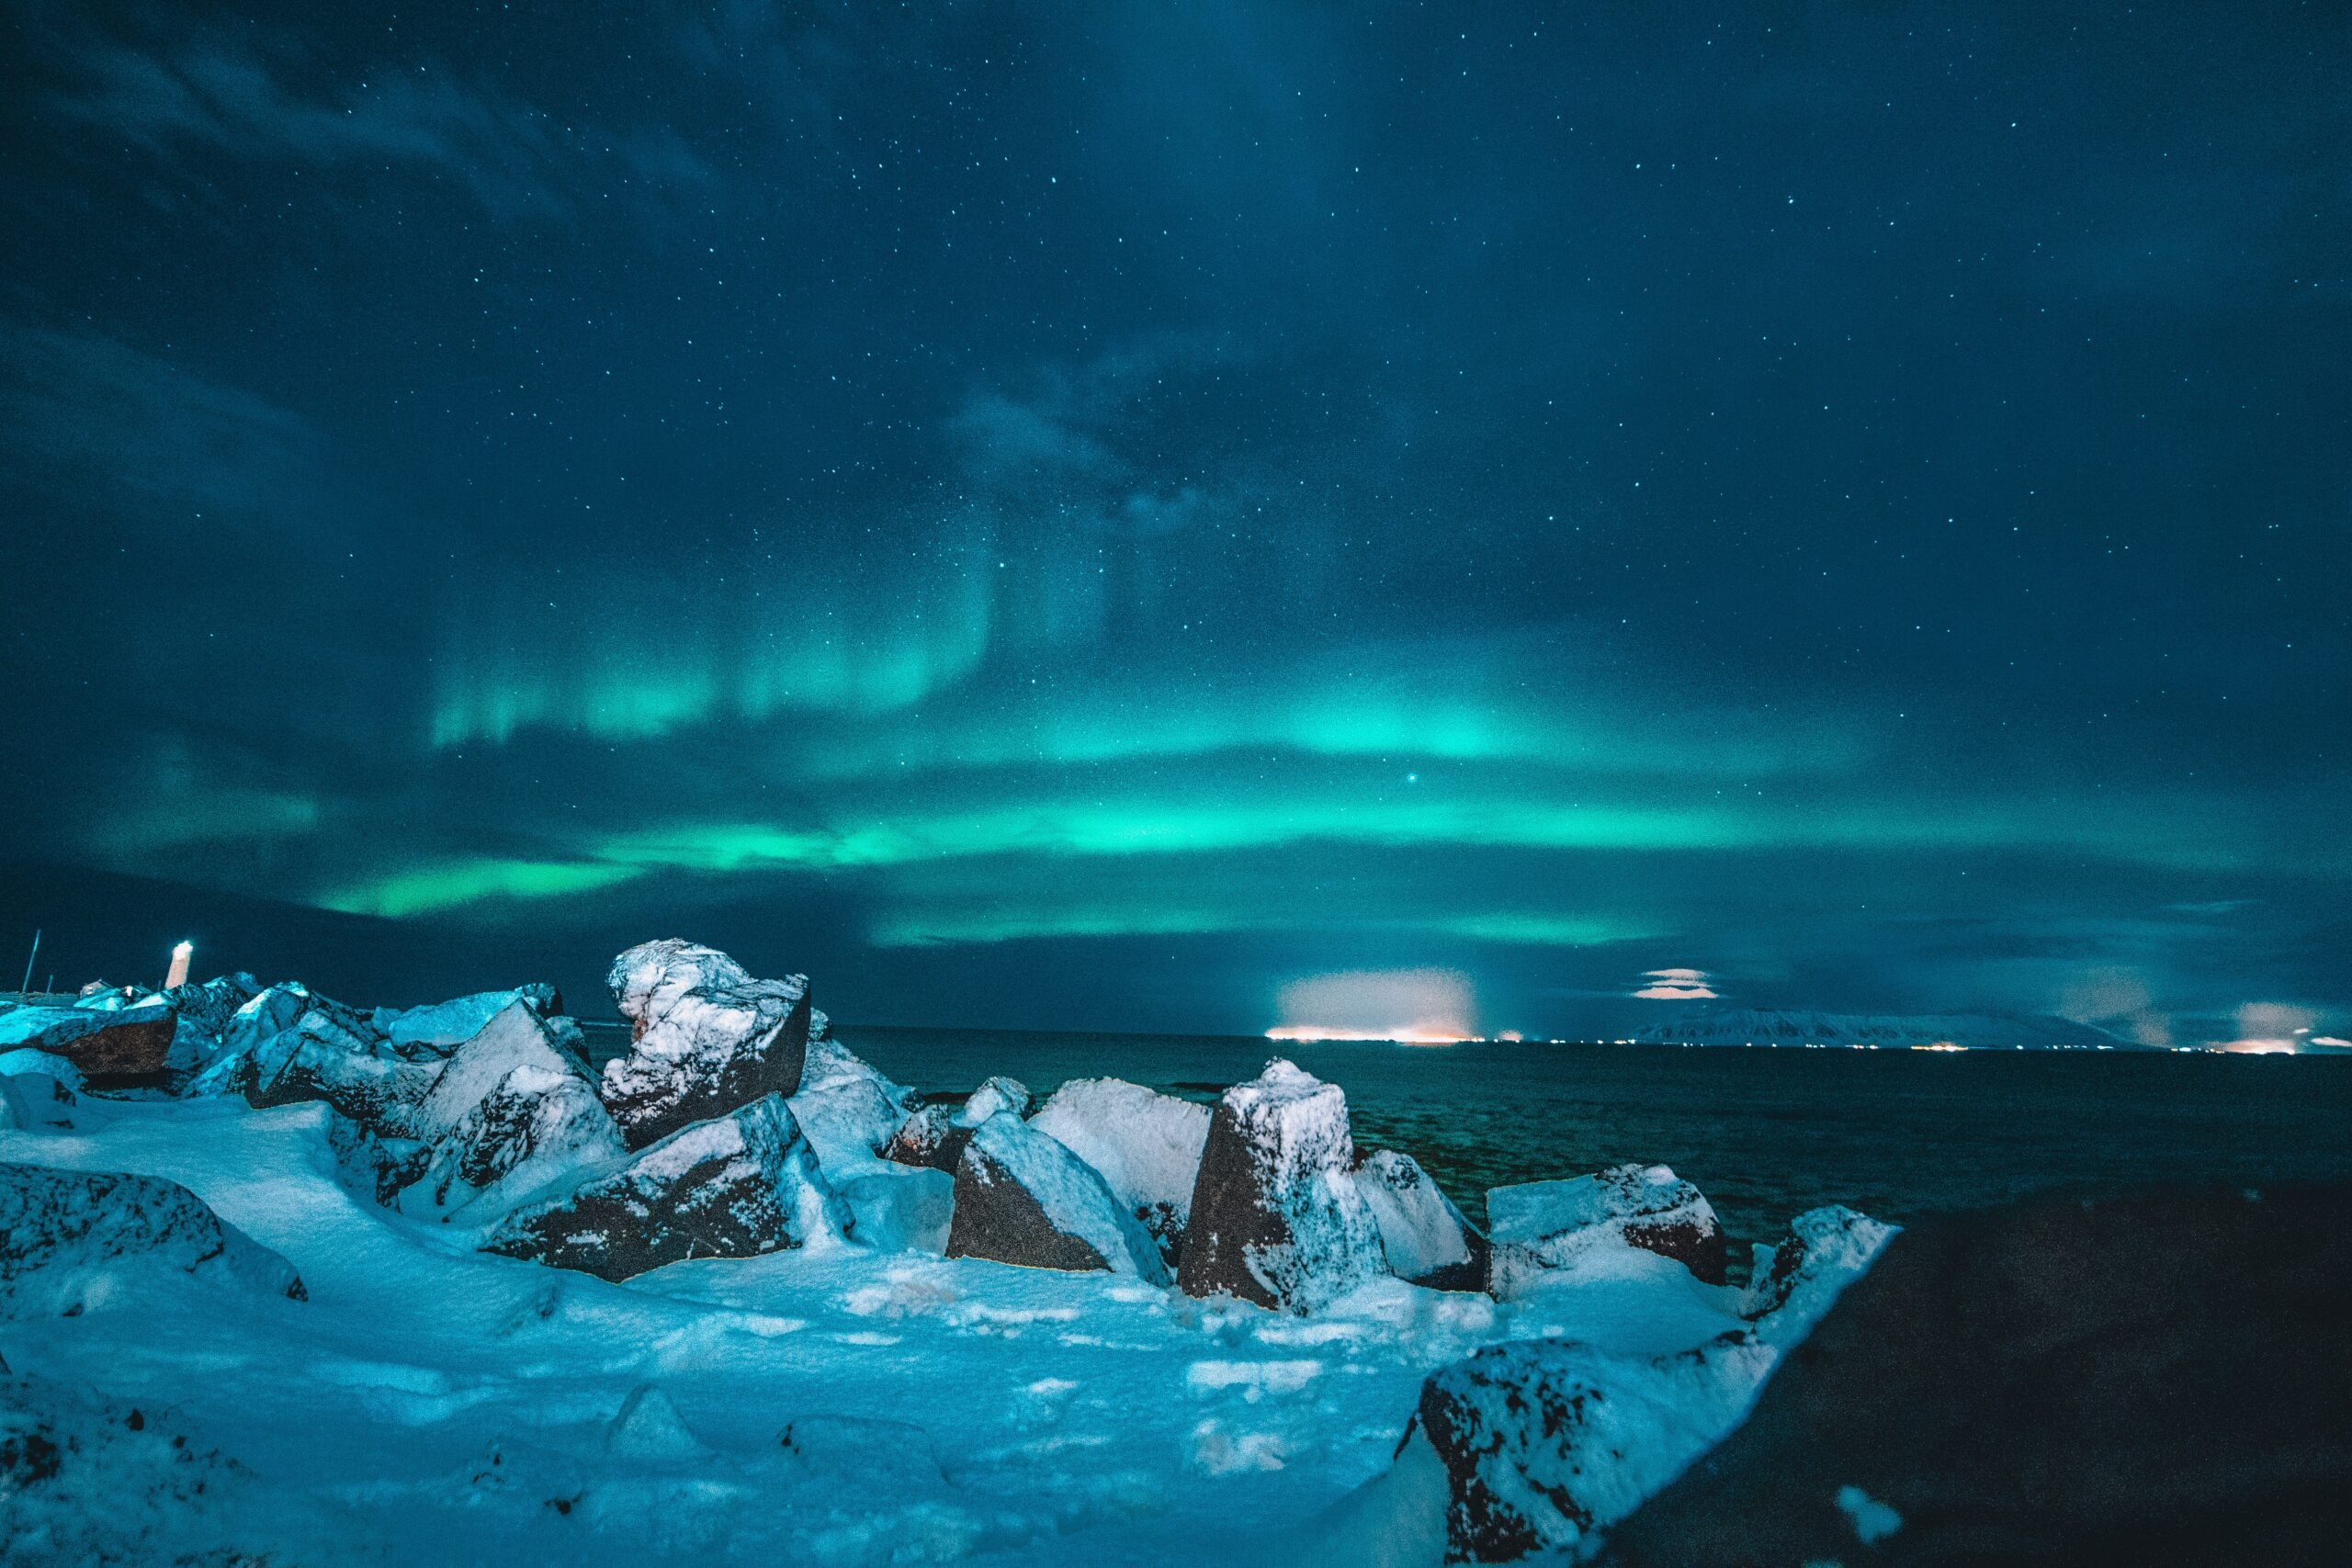 northern lights with snow on the ground